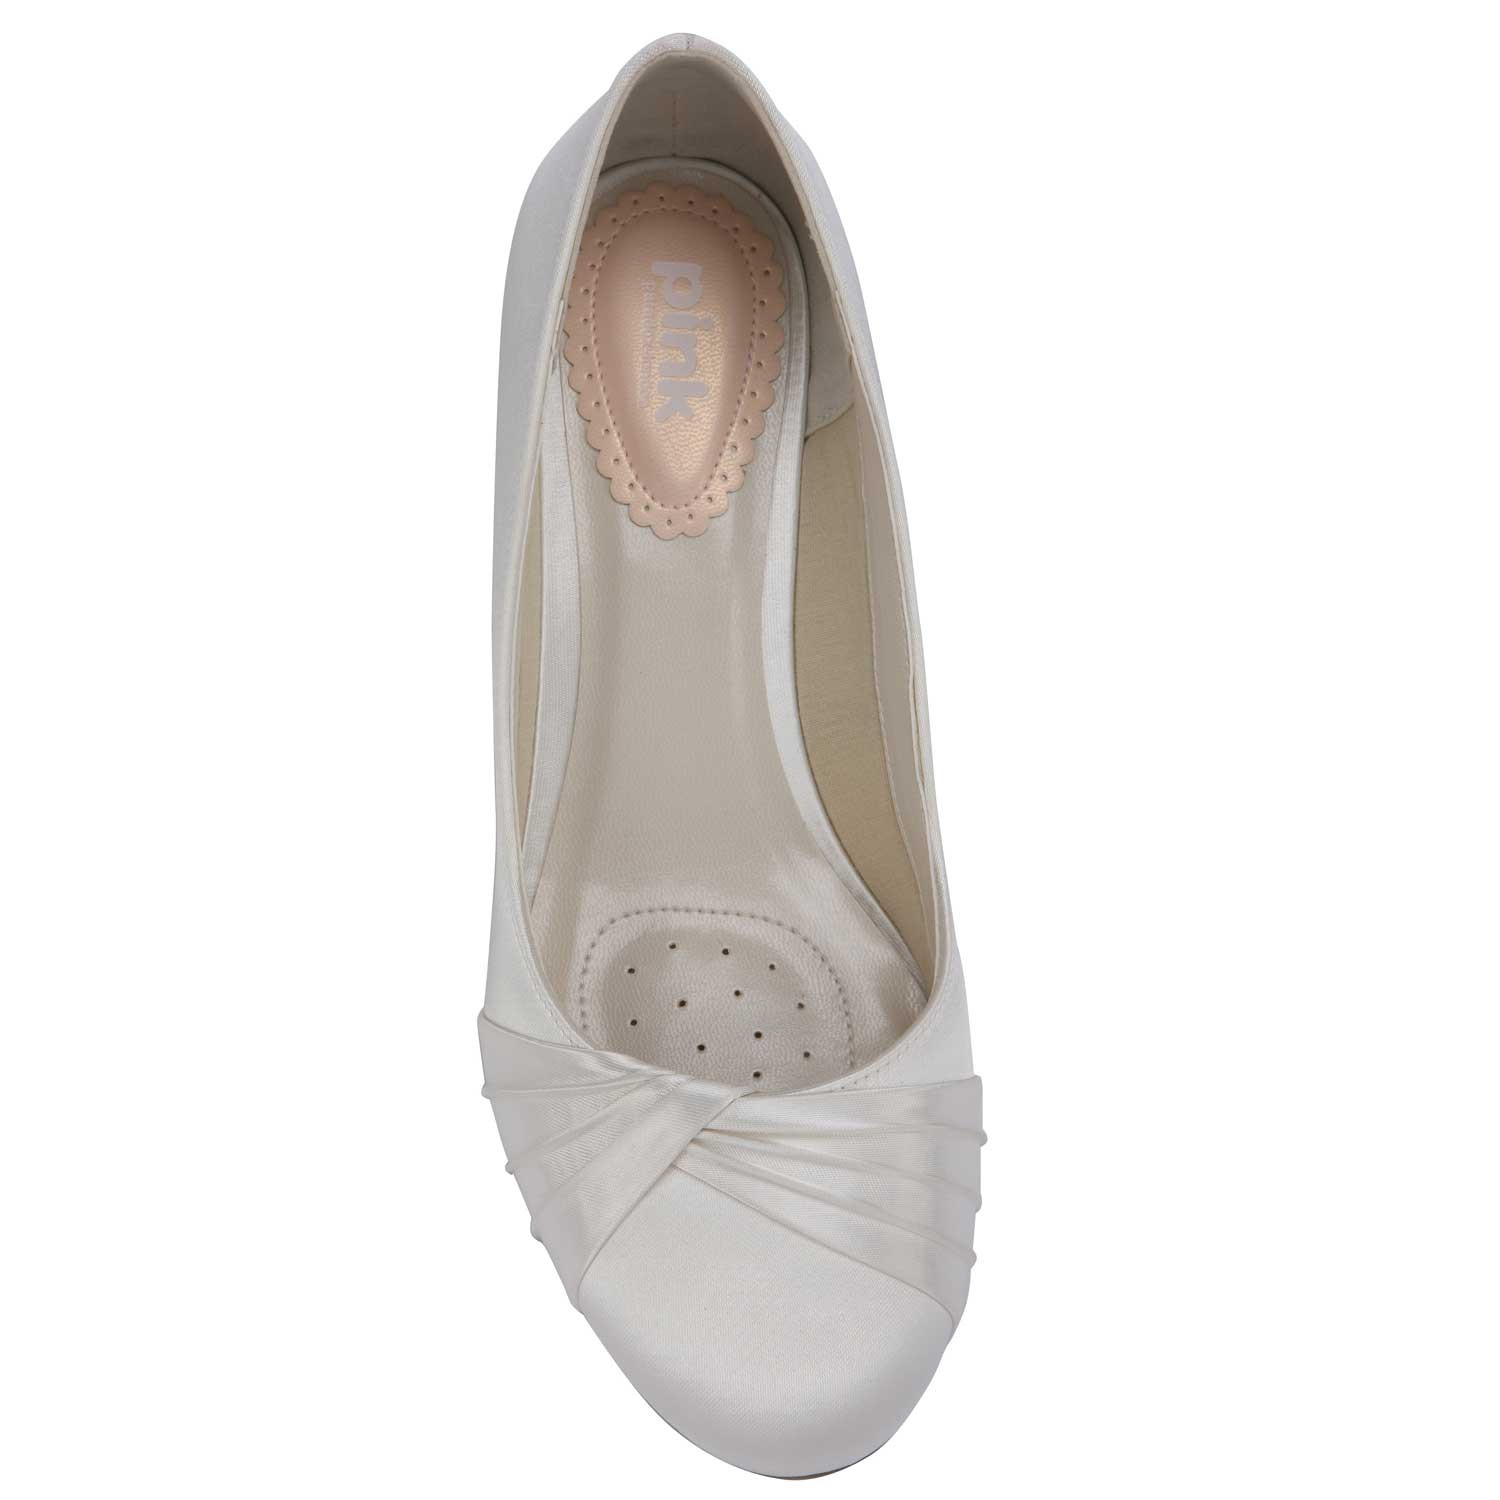 chaussures mariage gleam chaussures mariage talon compens - Chaussure Compense Mariage